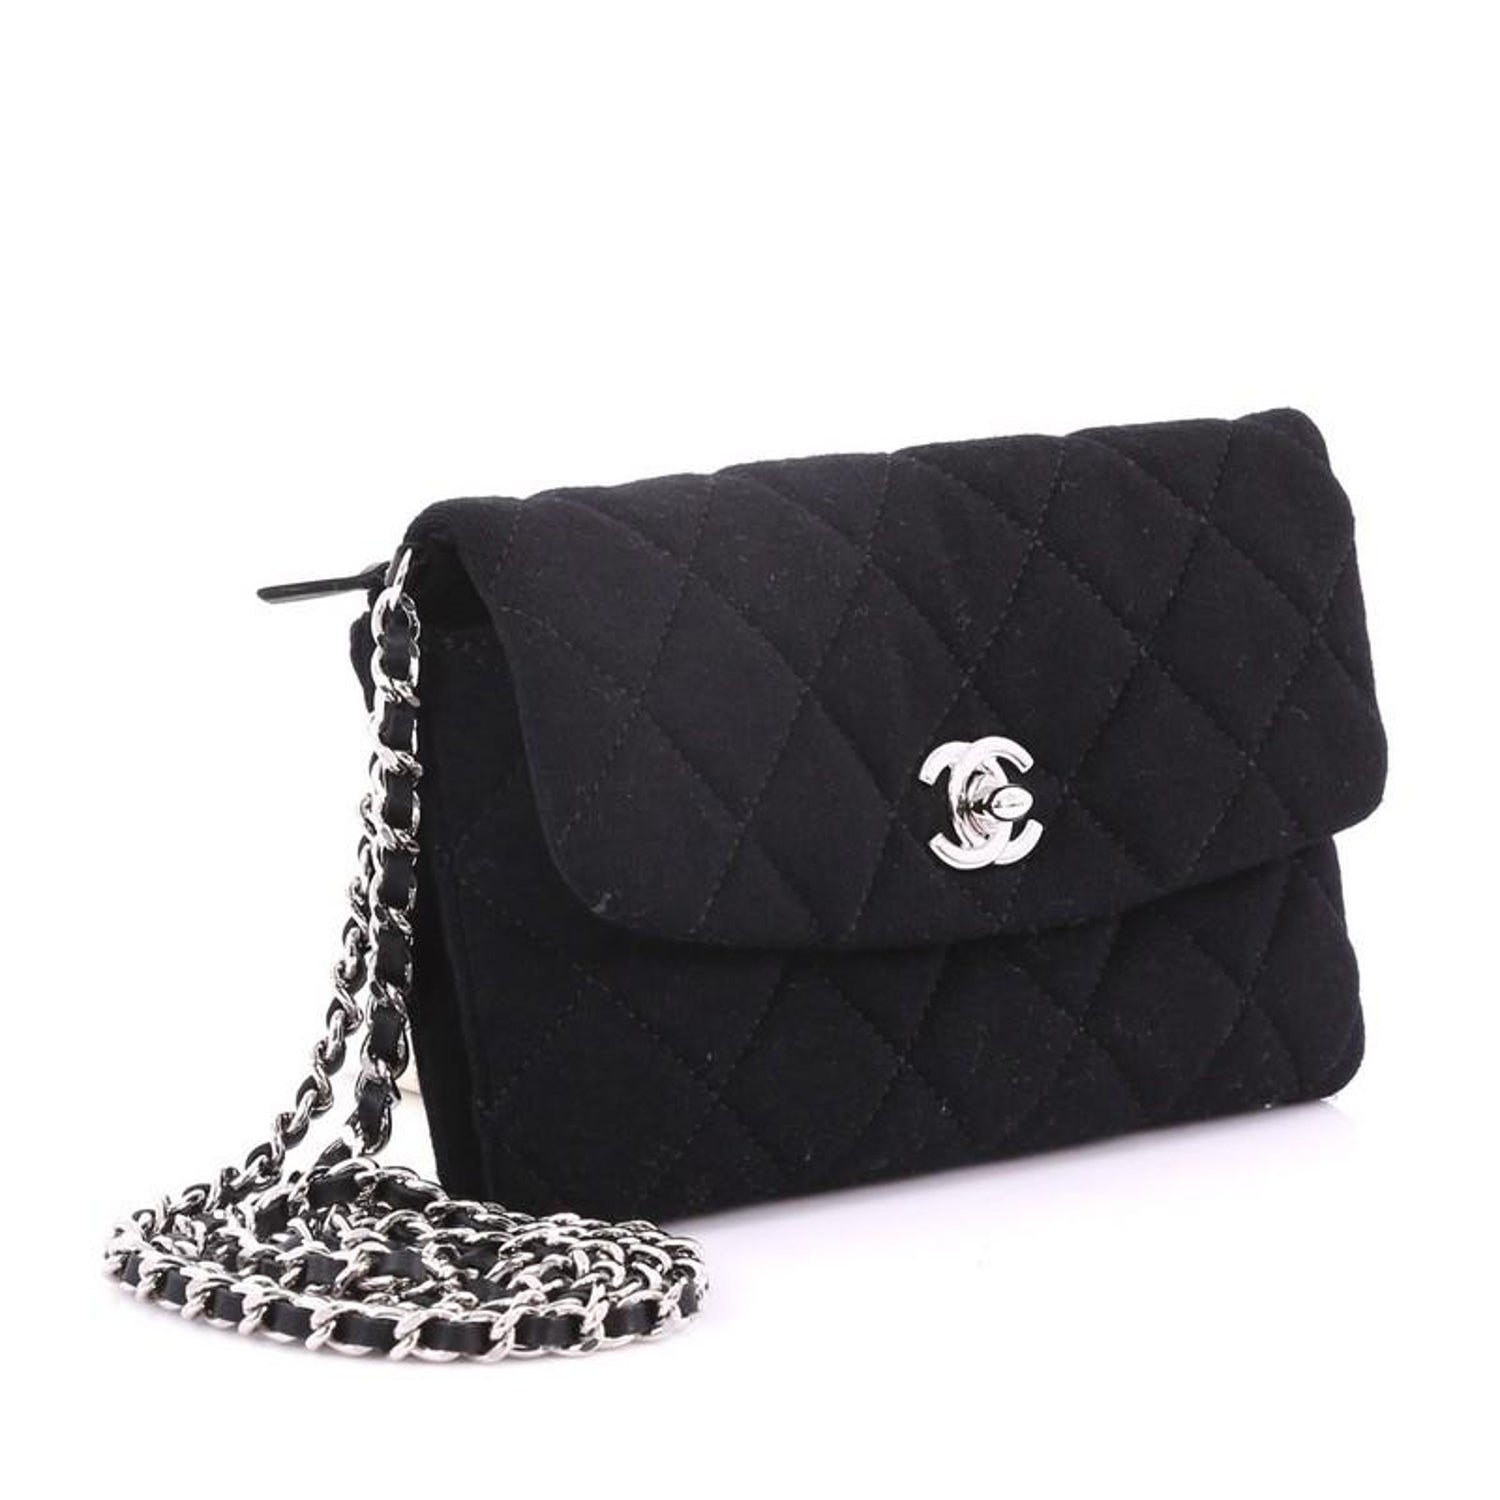 8b704fe4891f0d Chanel VIP Chain Crossbody Quilted Jersey at 1stdibs